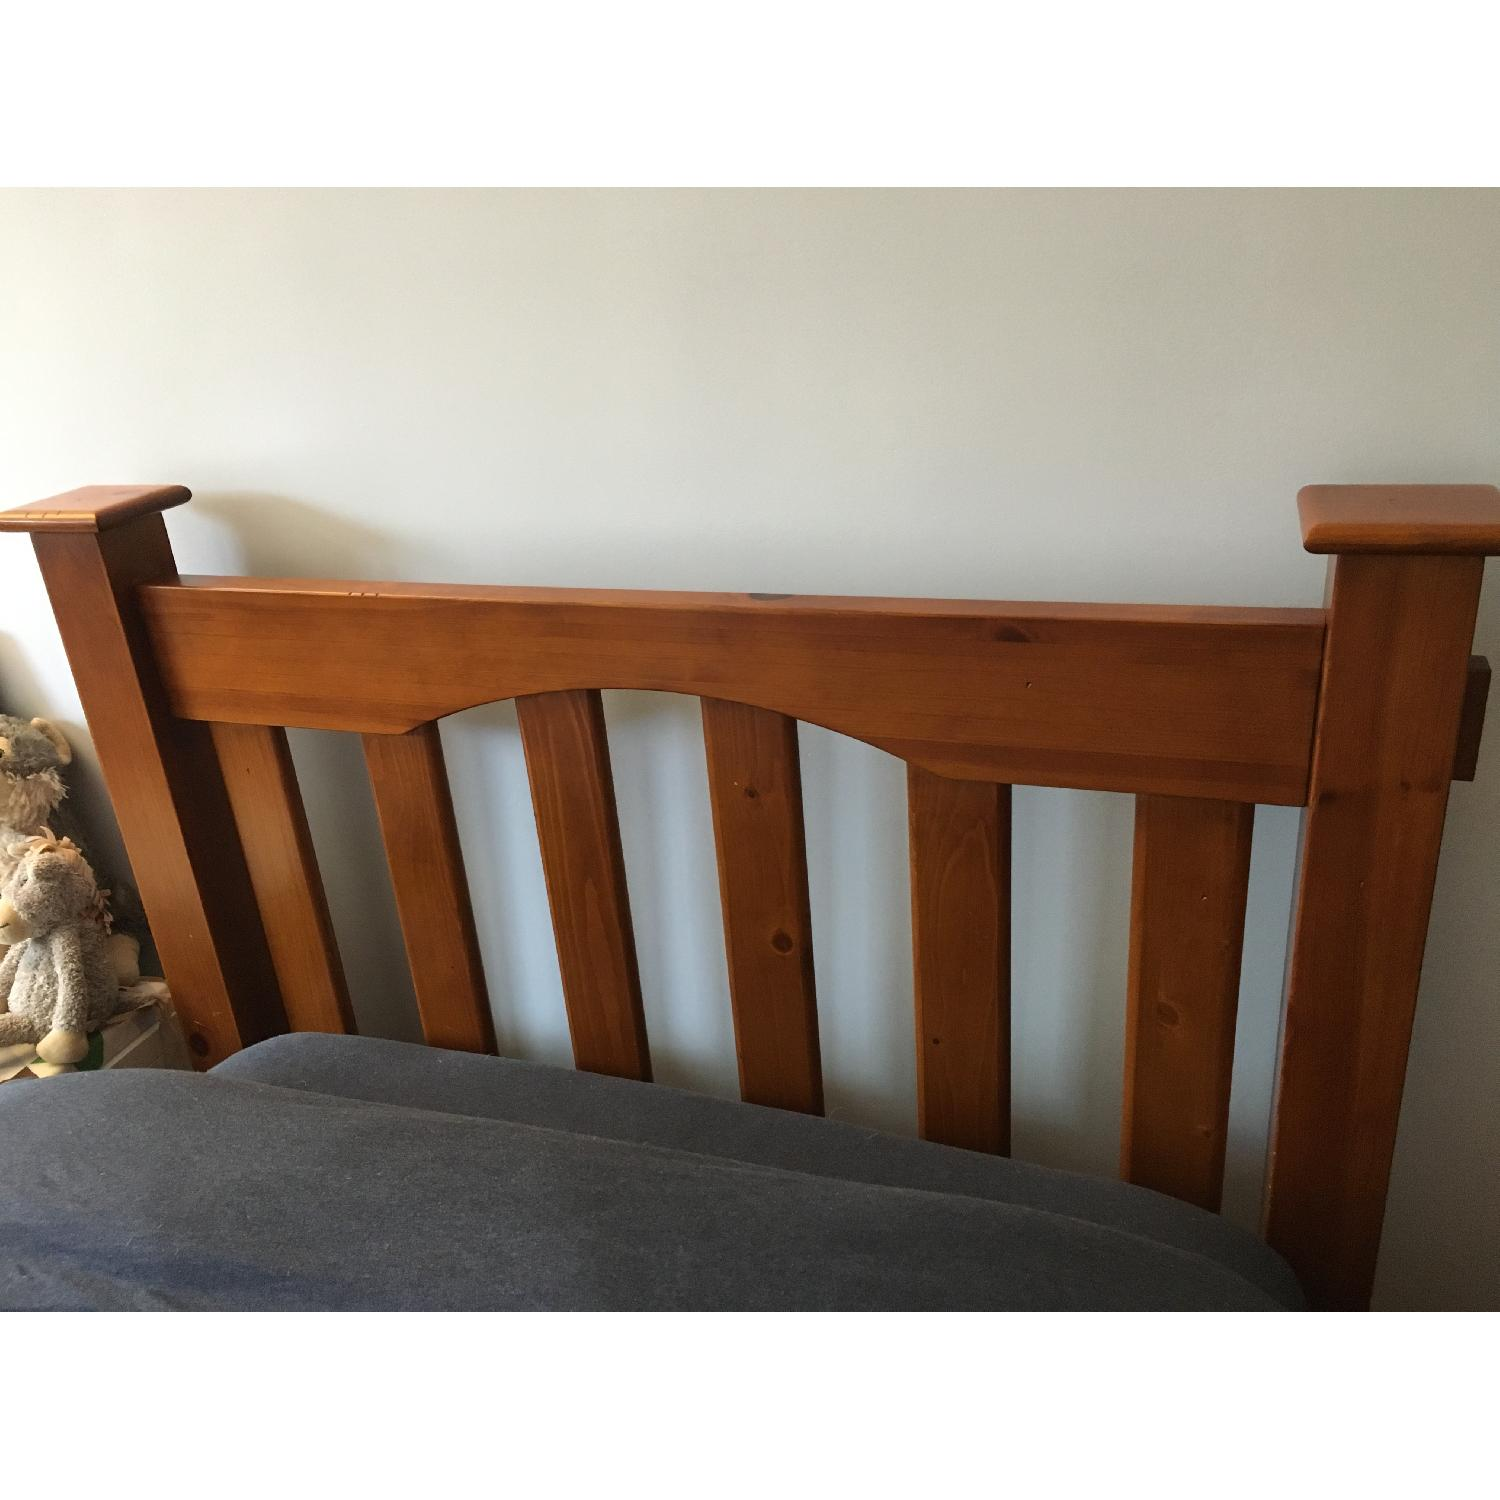 Pottery Barn Kendall Twin Bed w/ Trundle - image-5